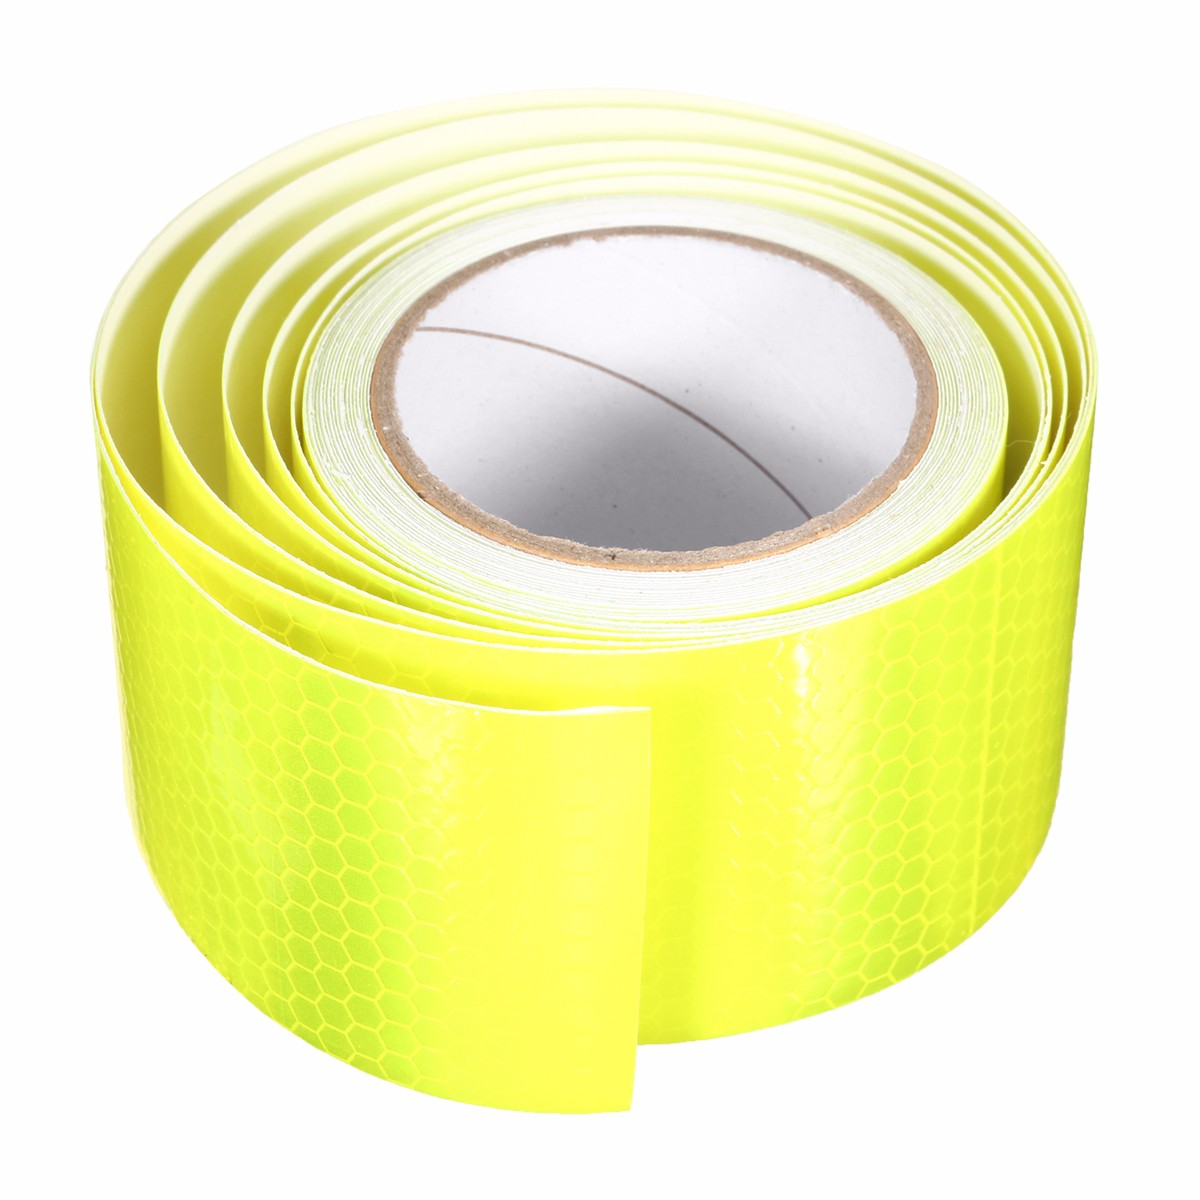 Sticker 3m malaysia - 3m Reflective Safety Warning Conspicuity Tape Roll Film